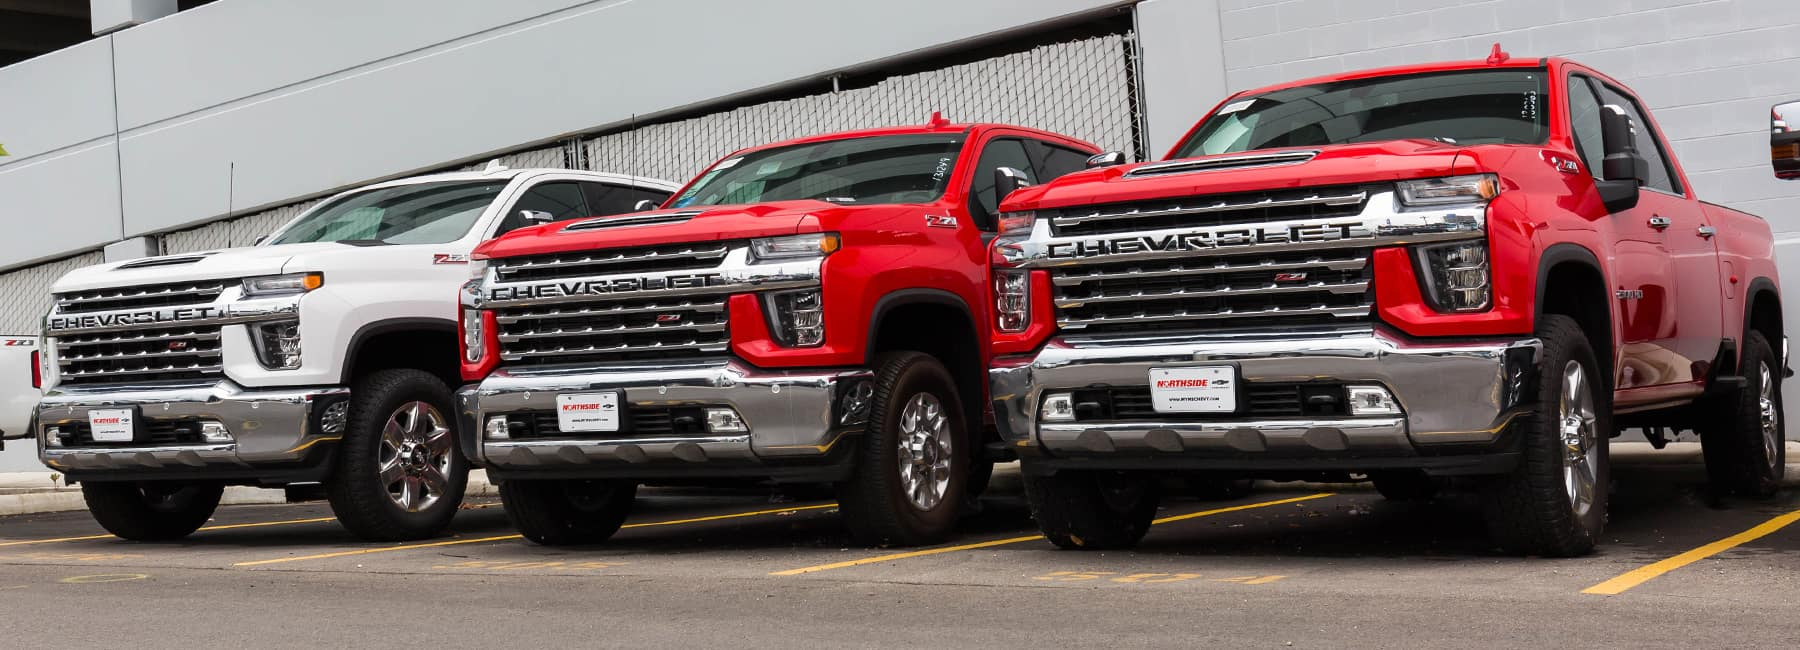 New Silverado Financing in San Antonio